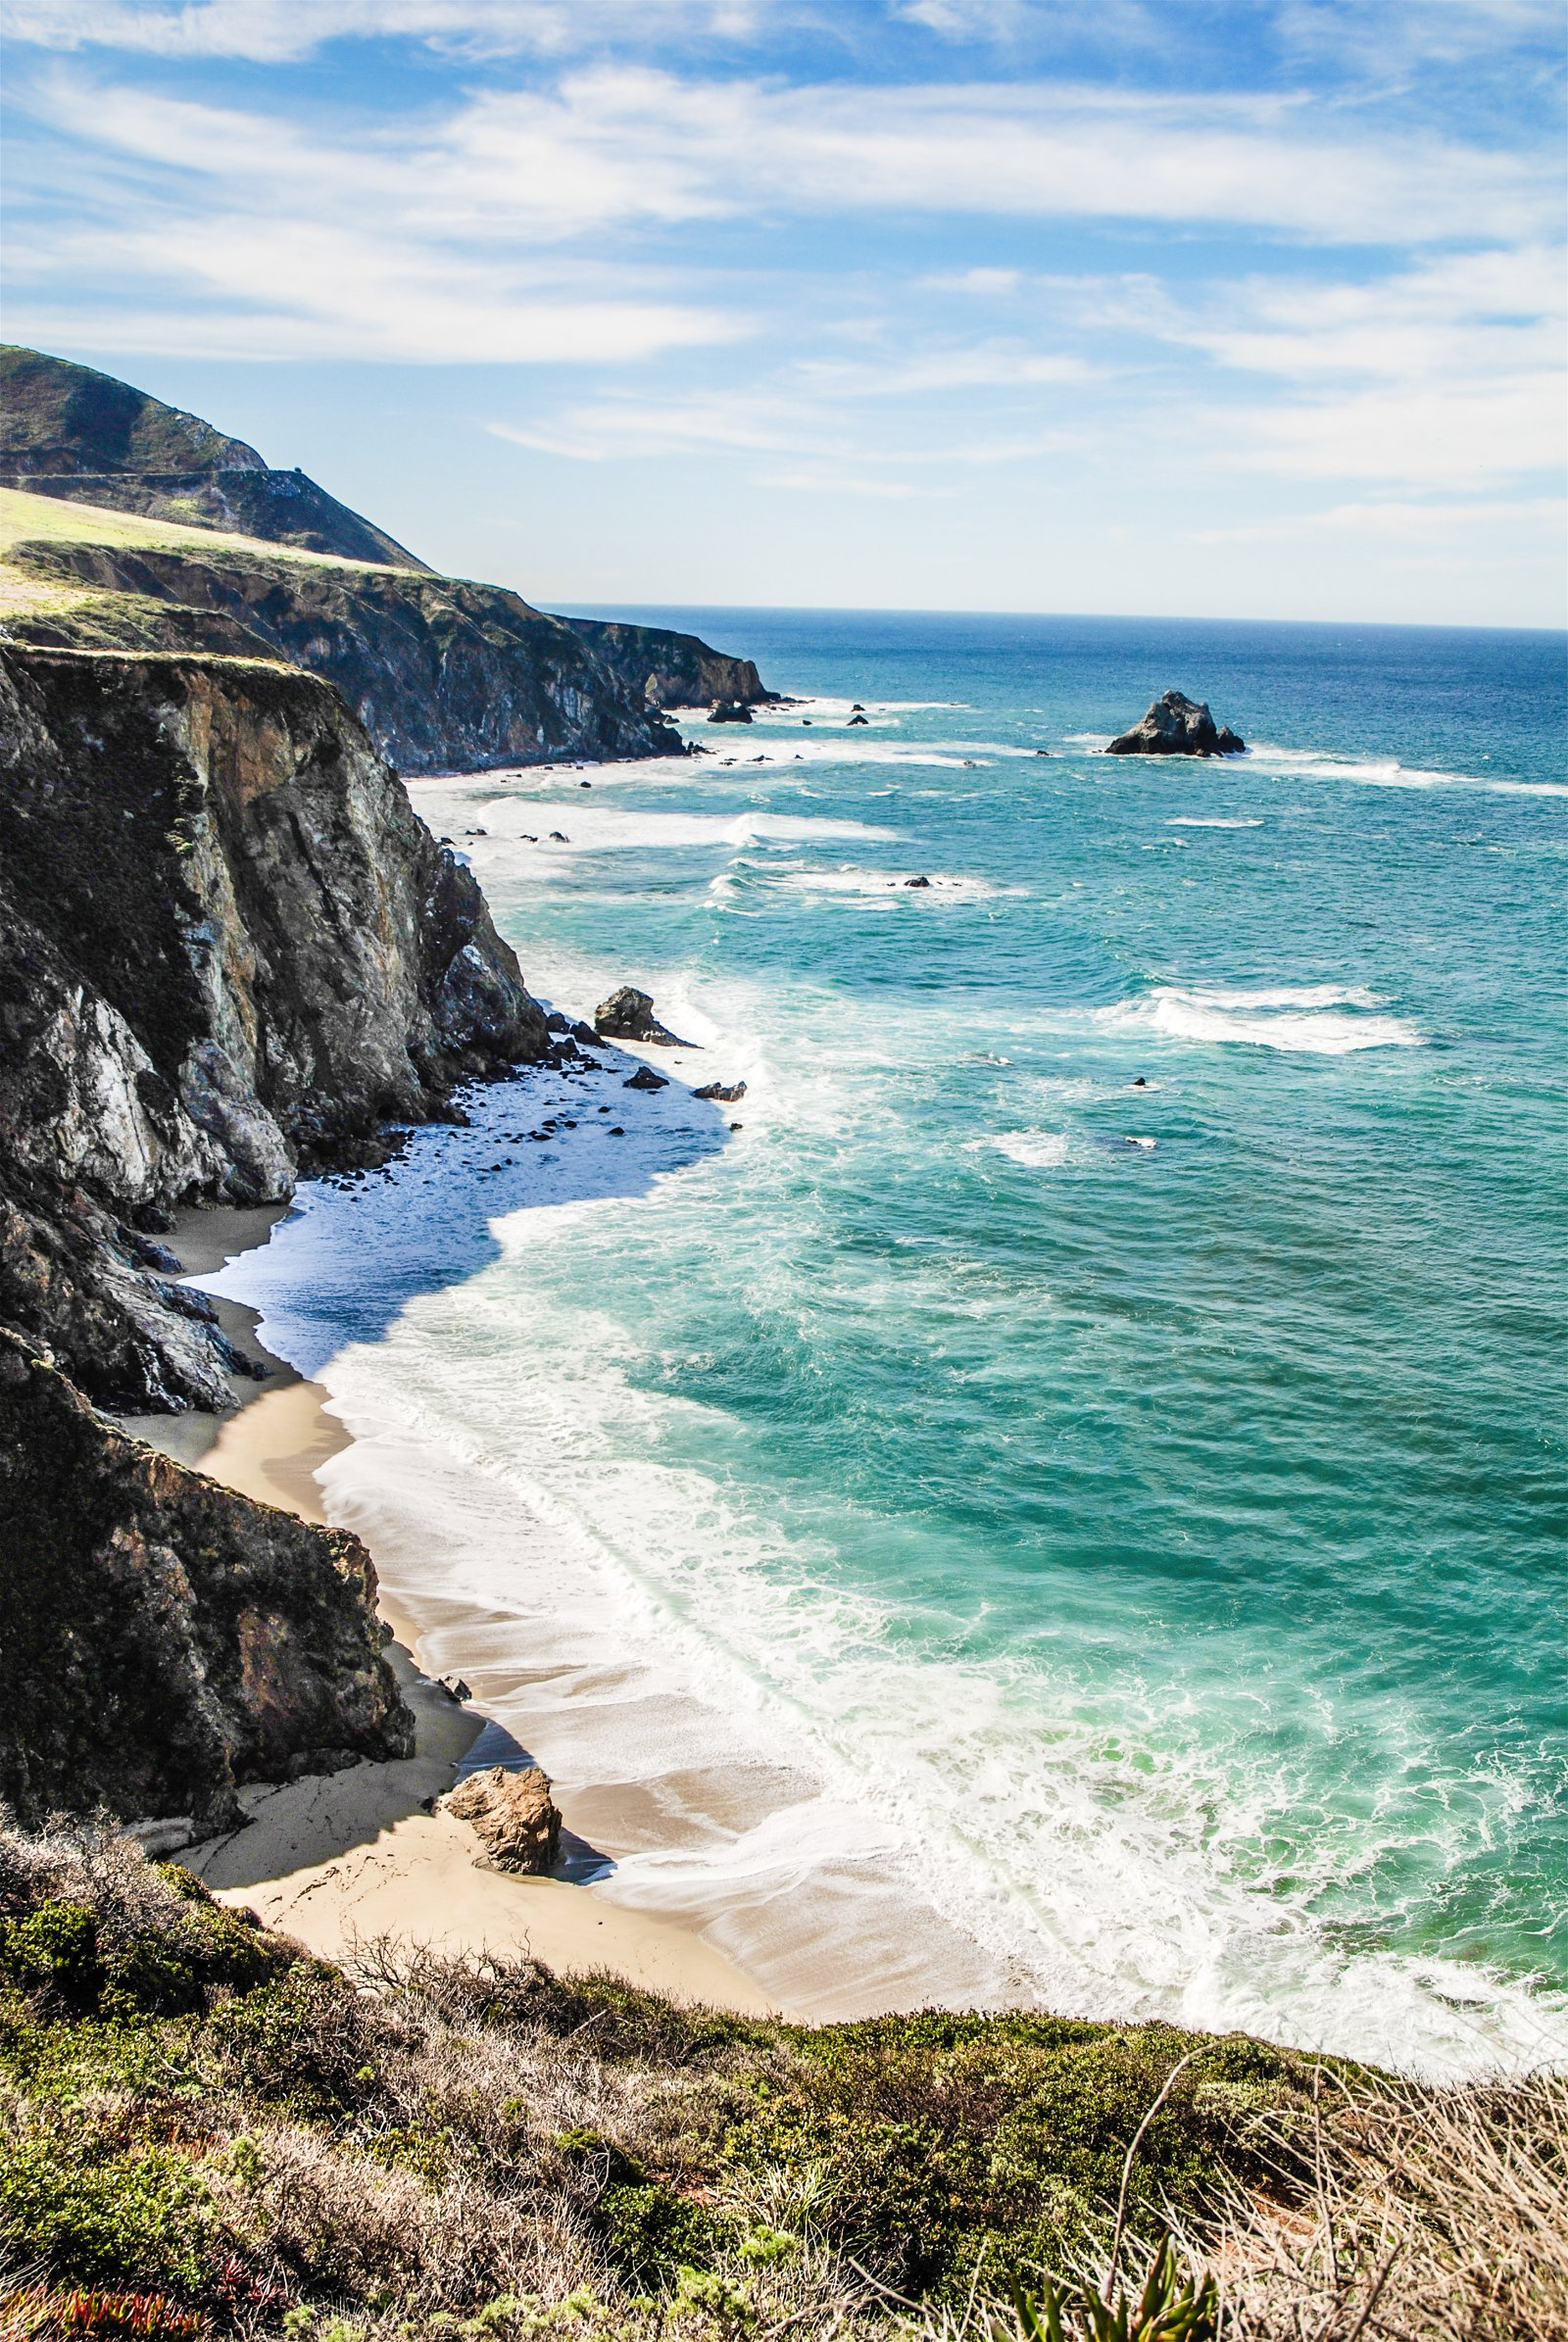 The Ultimate California Road Trip: 19 Places To Stop, Eat, See and Explore (15)